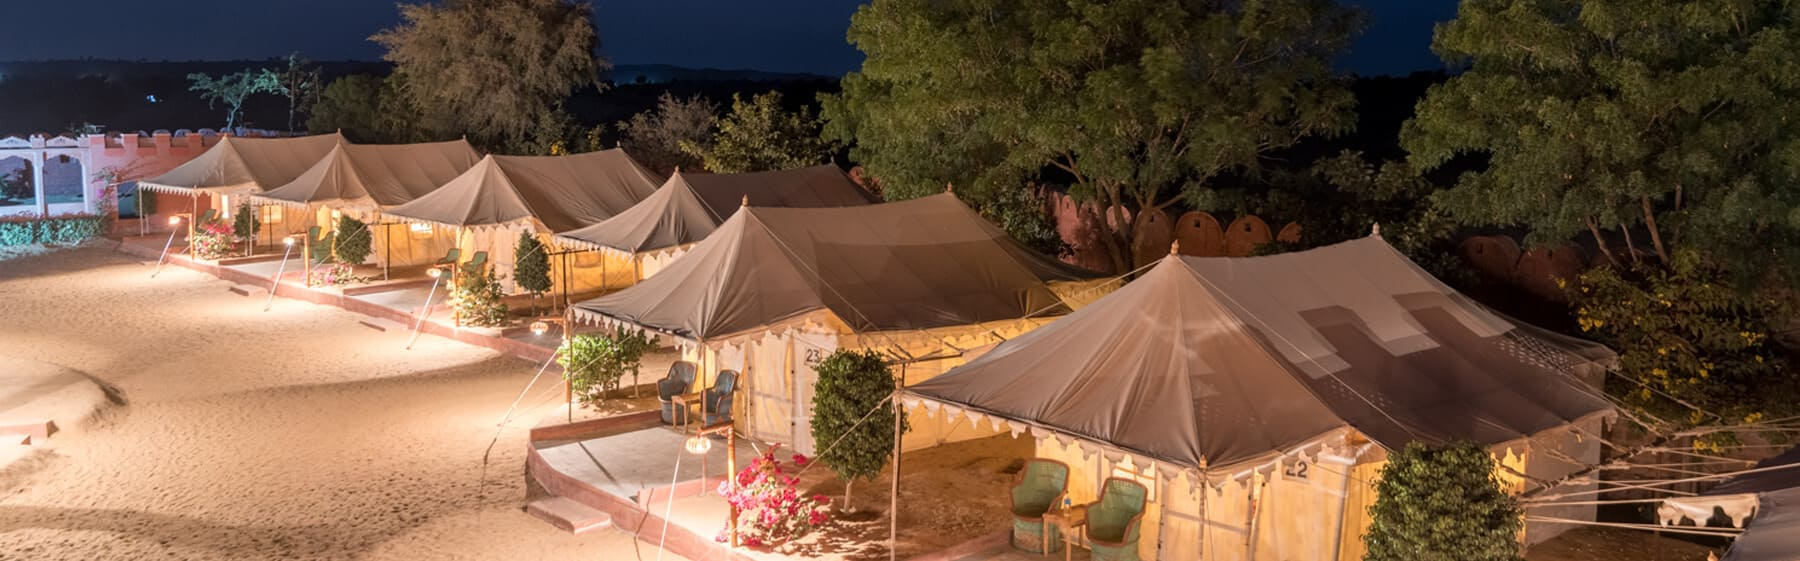 Spend a night in the beautiful luxury 